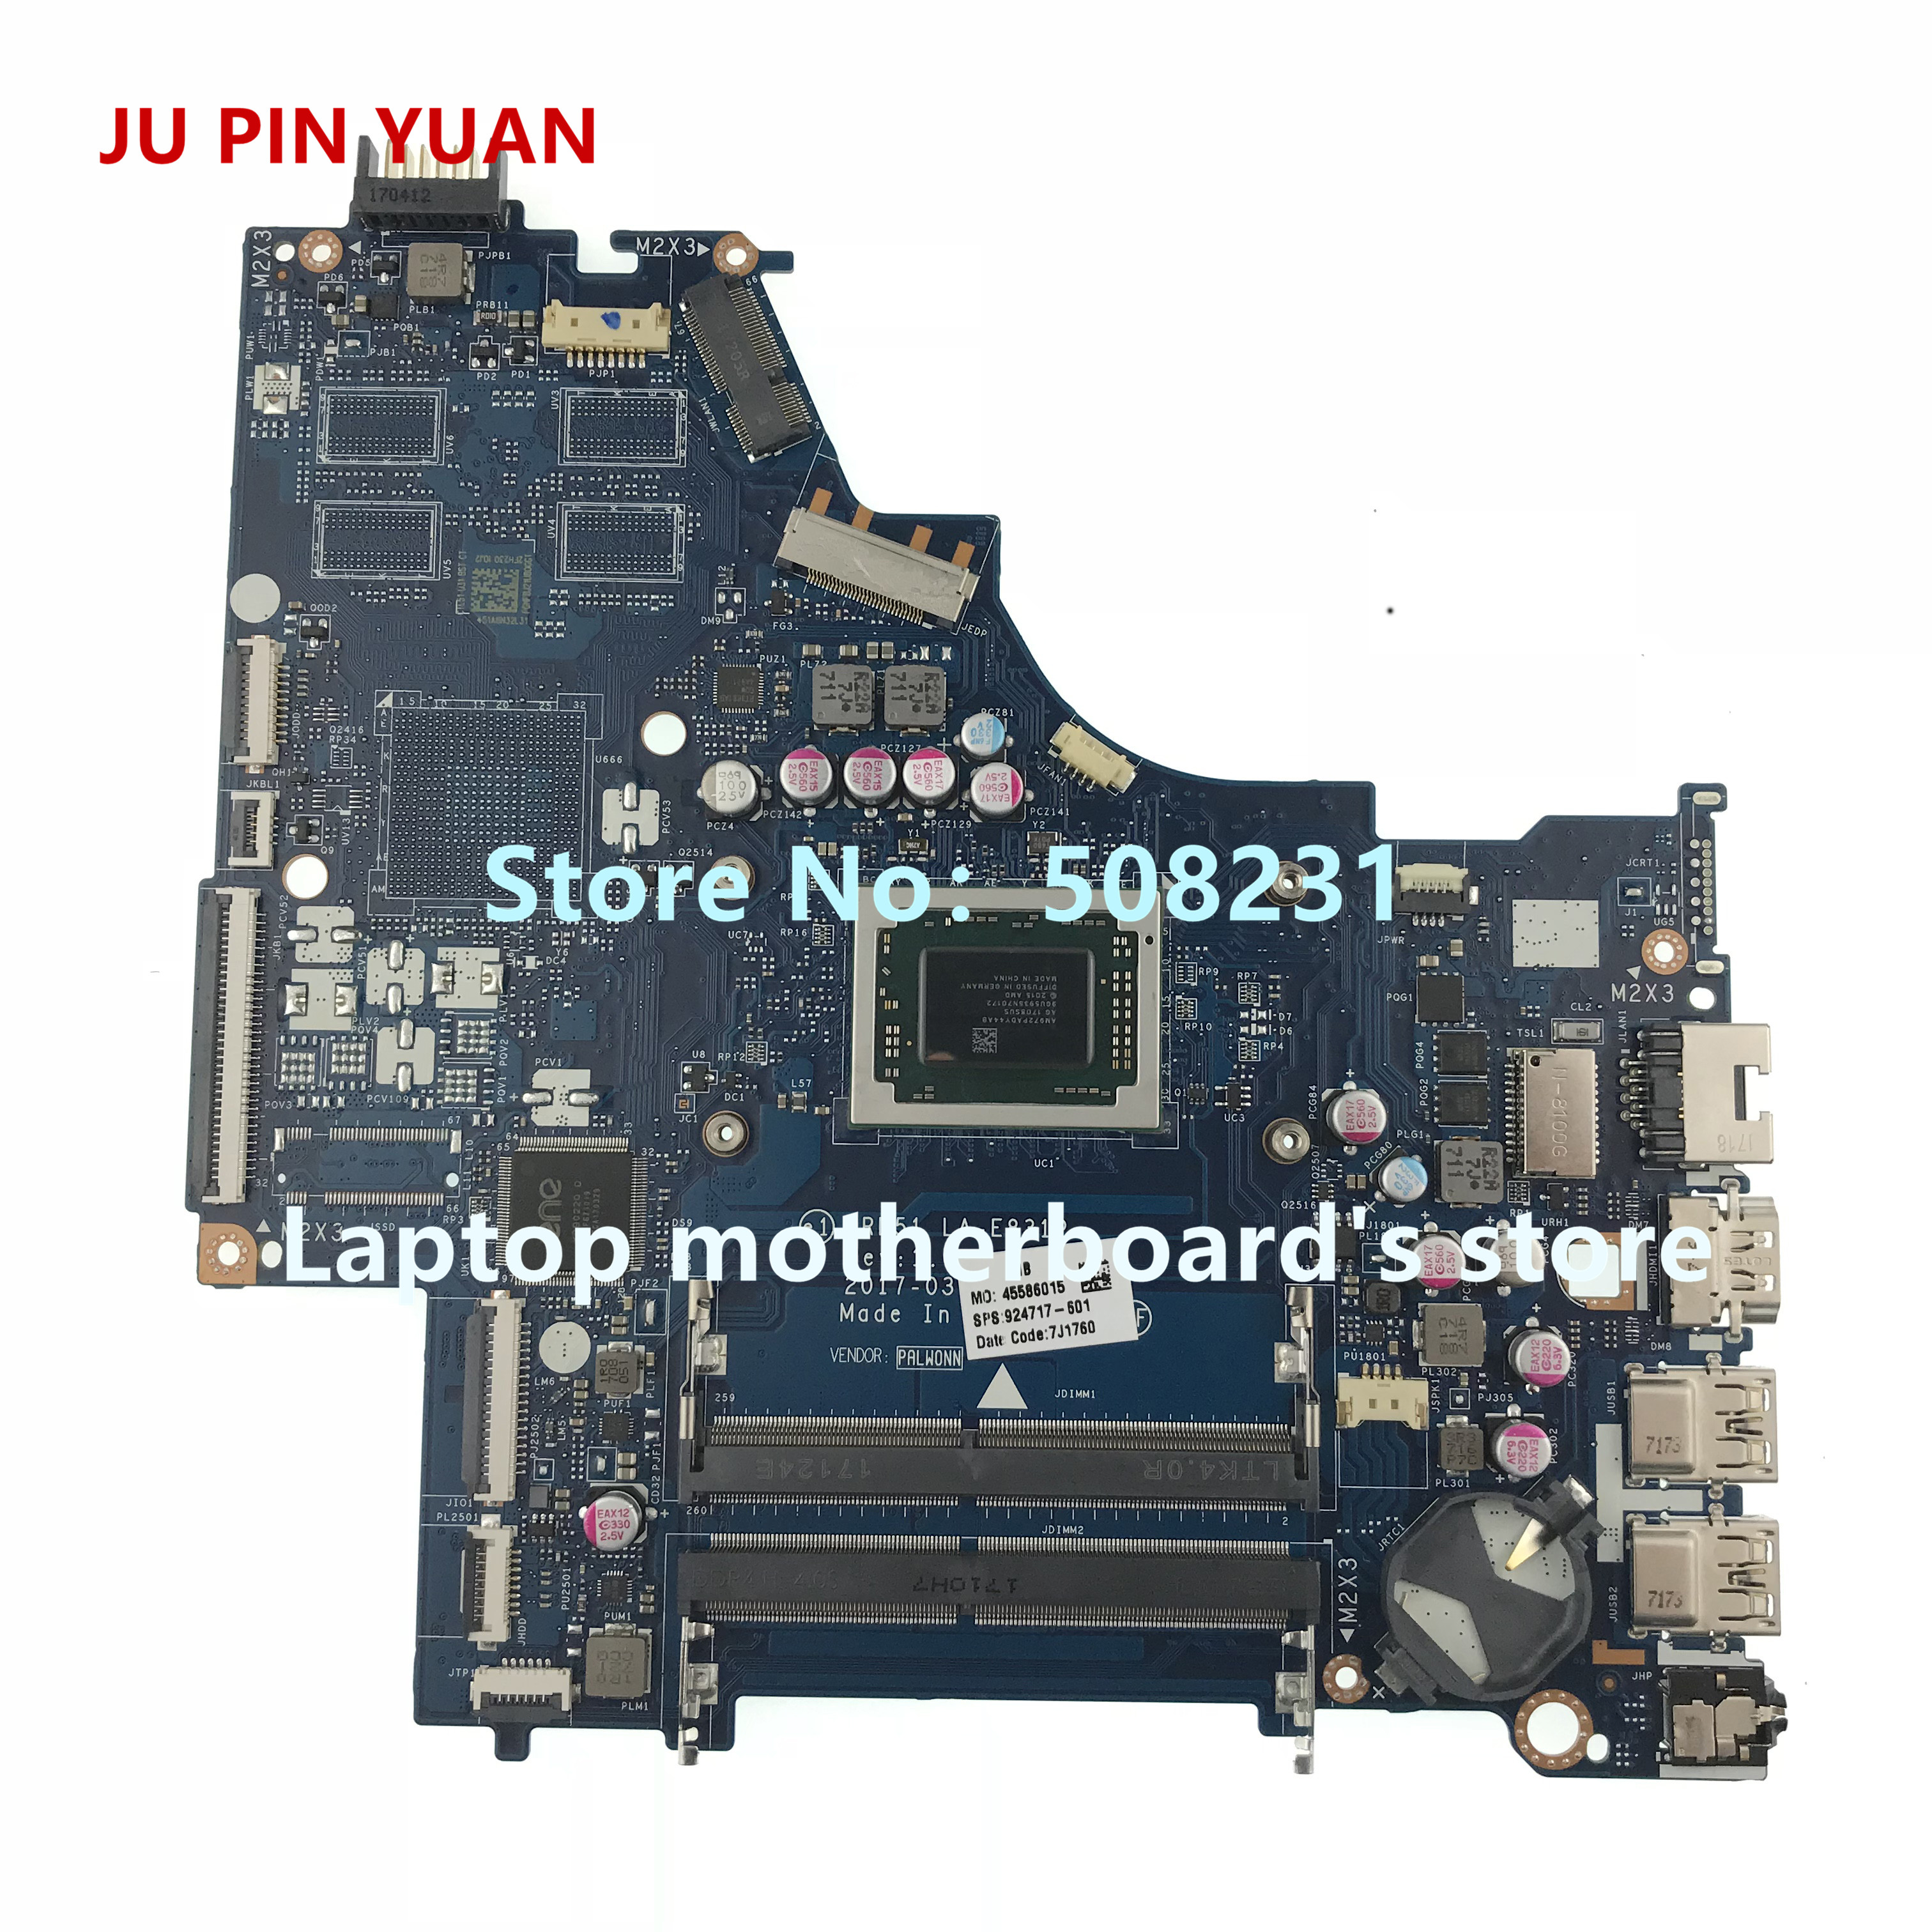 JU PIN YUAN 924717-601 CRL51 LA-E831P mainboard For HP NOTEBOOK 15-BW 15-BW033WM Laptop Motherboard A12-9720P fully TestedJU PIN YUAN 924717-601 CRL51 LA-E831P mainboard For HP NOTEBOOK 15-BW 15-BW033WM Laptop Motherboard A12-9720P fully Tested